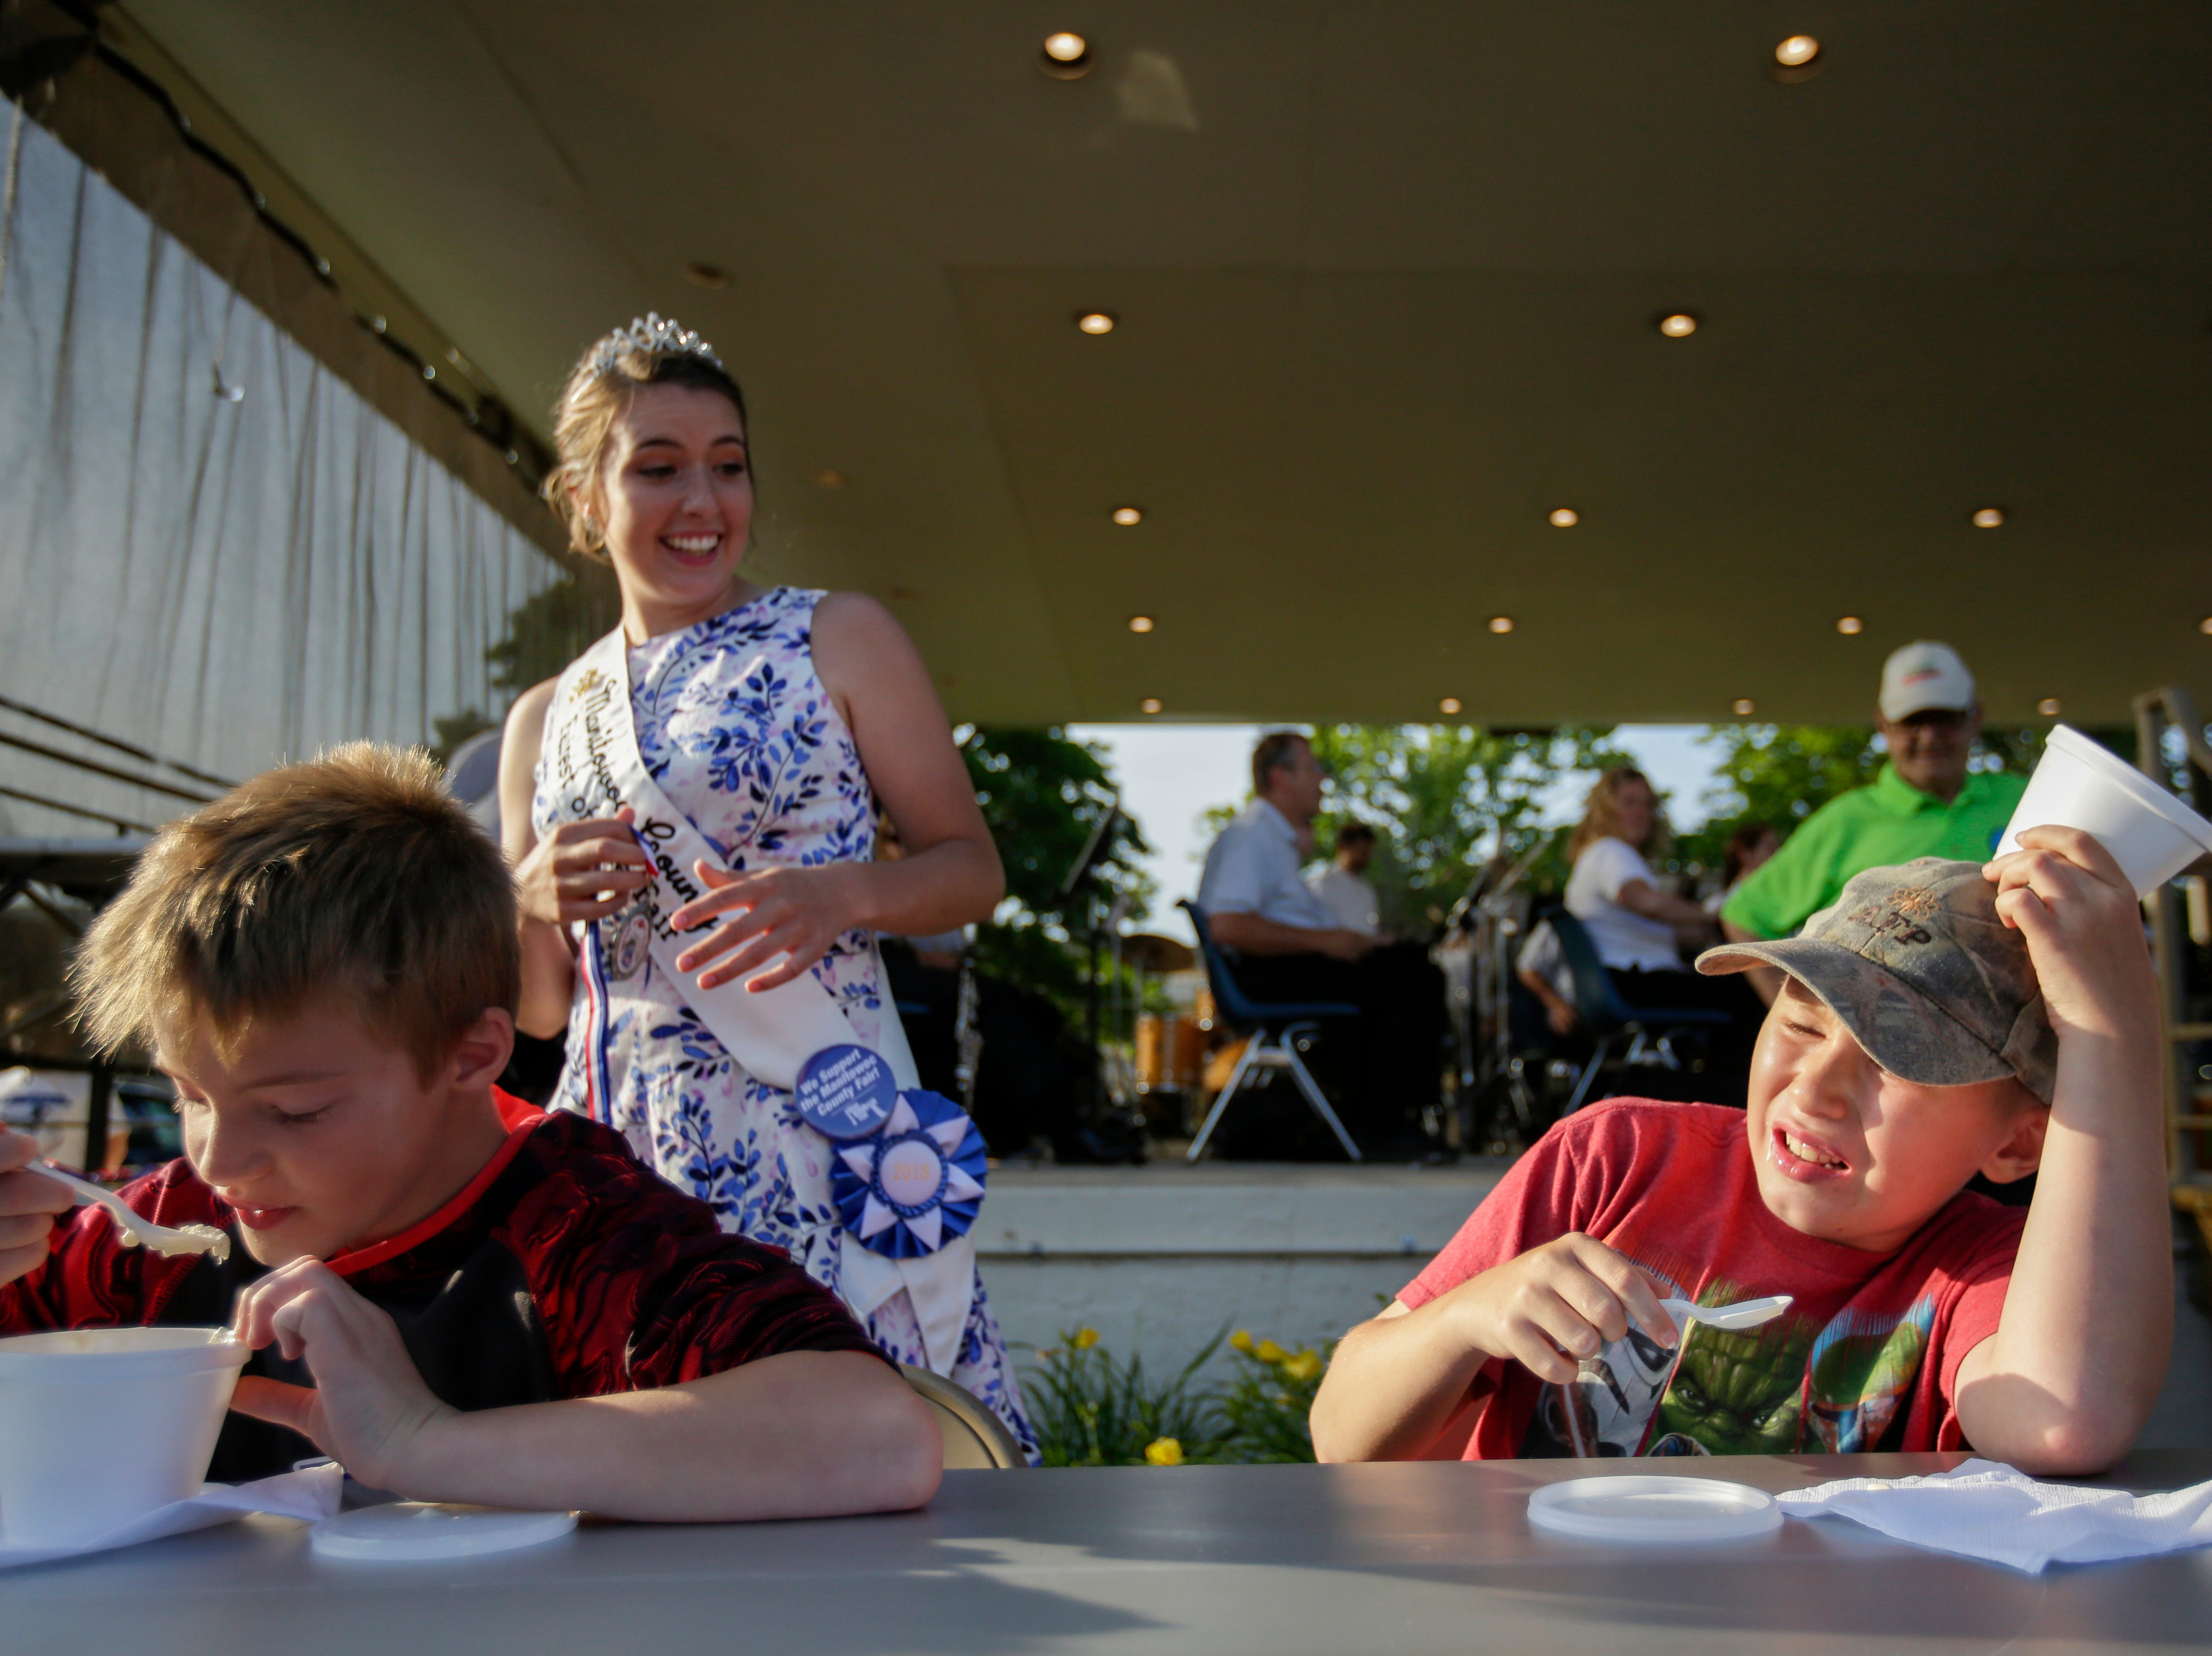 Mark Brinkman, 12, fights off a brain freeze after finishing first in the ice cream sundae eating contest during Sundae Thursday at Central Park Thursday, June 28, 2018, in Two Rivers, Wis. Josh Clark/USA TODAY NETWORK-Wisconsin